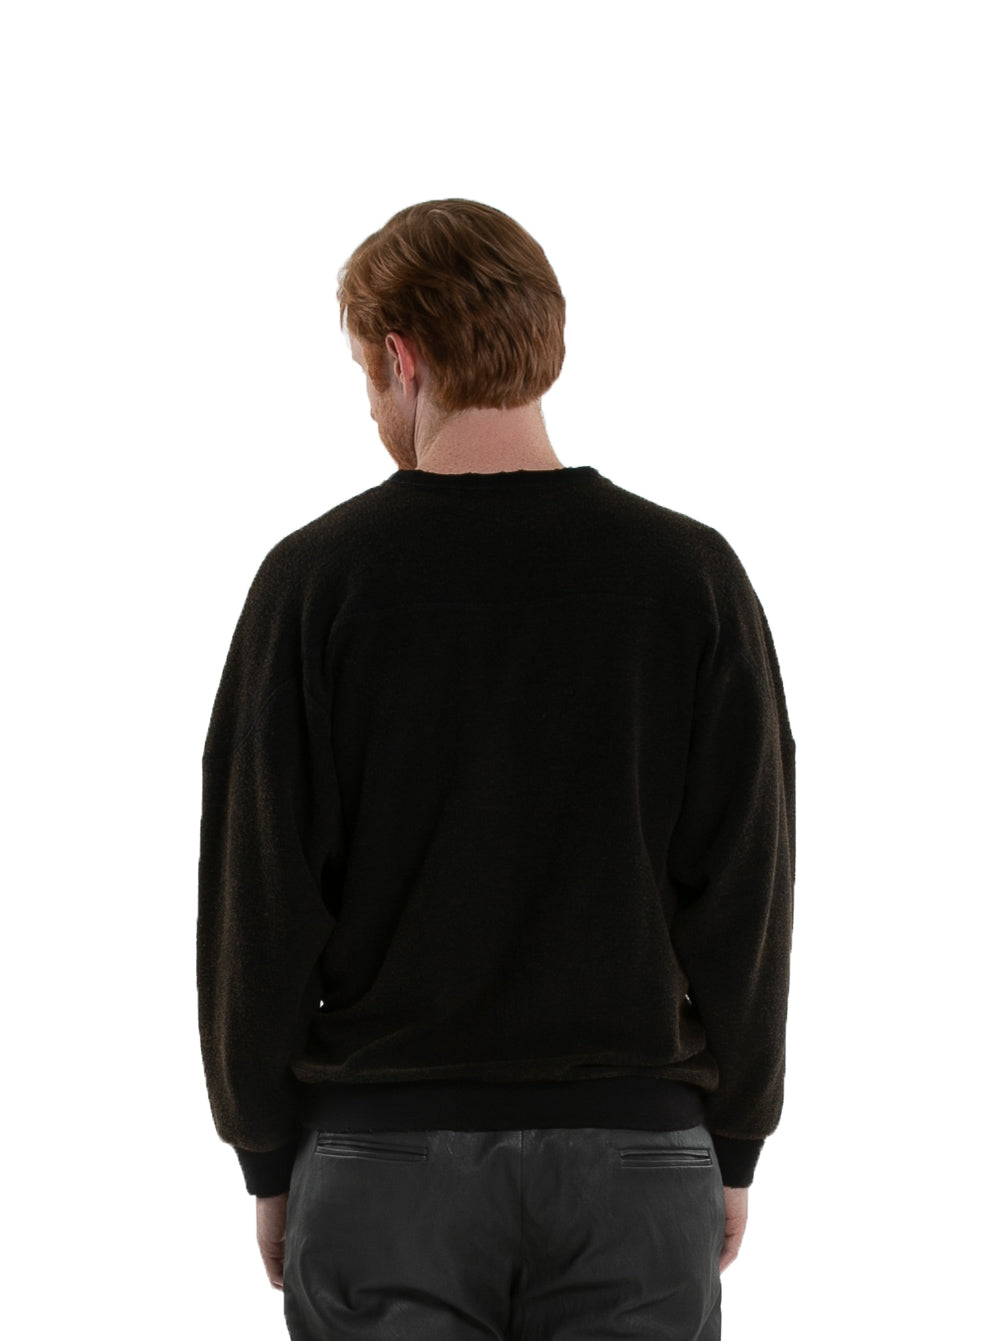 Backside of male model wearing Heavy Crew Sweat in Black